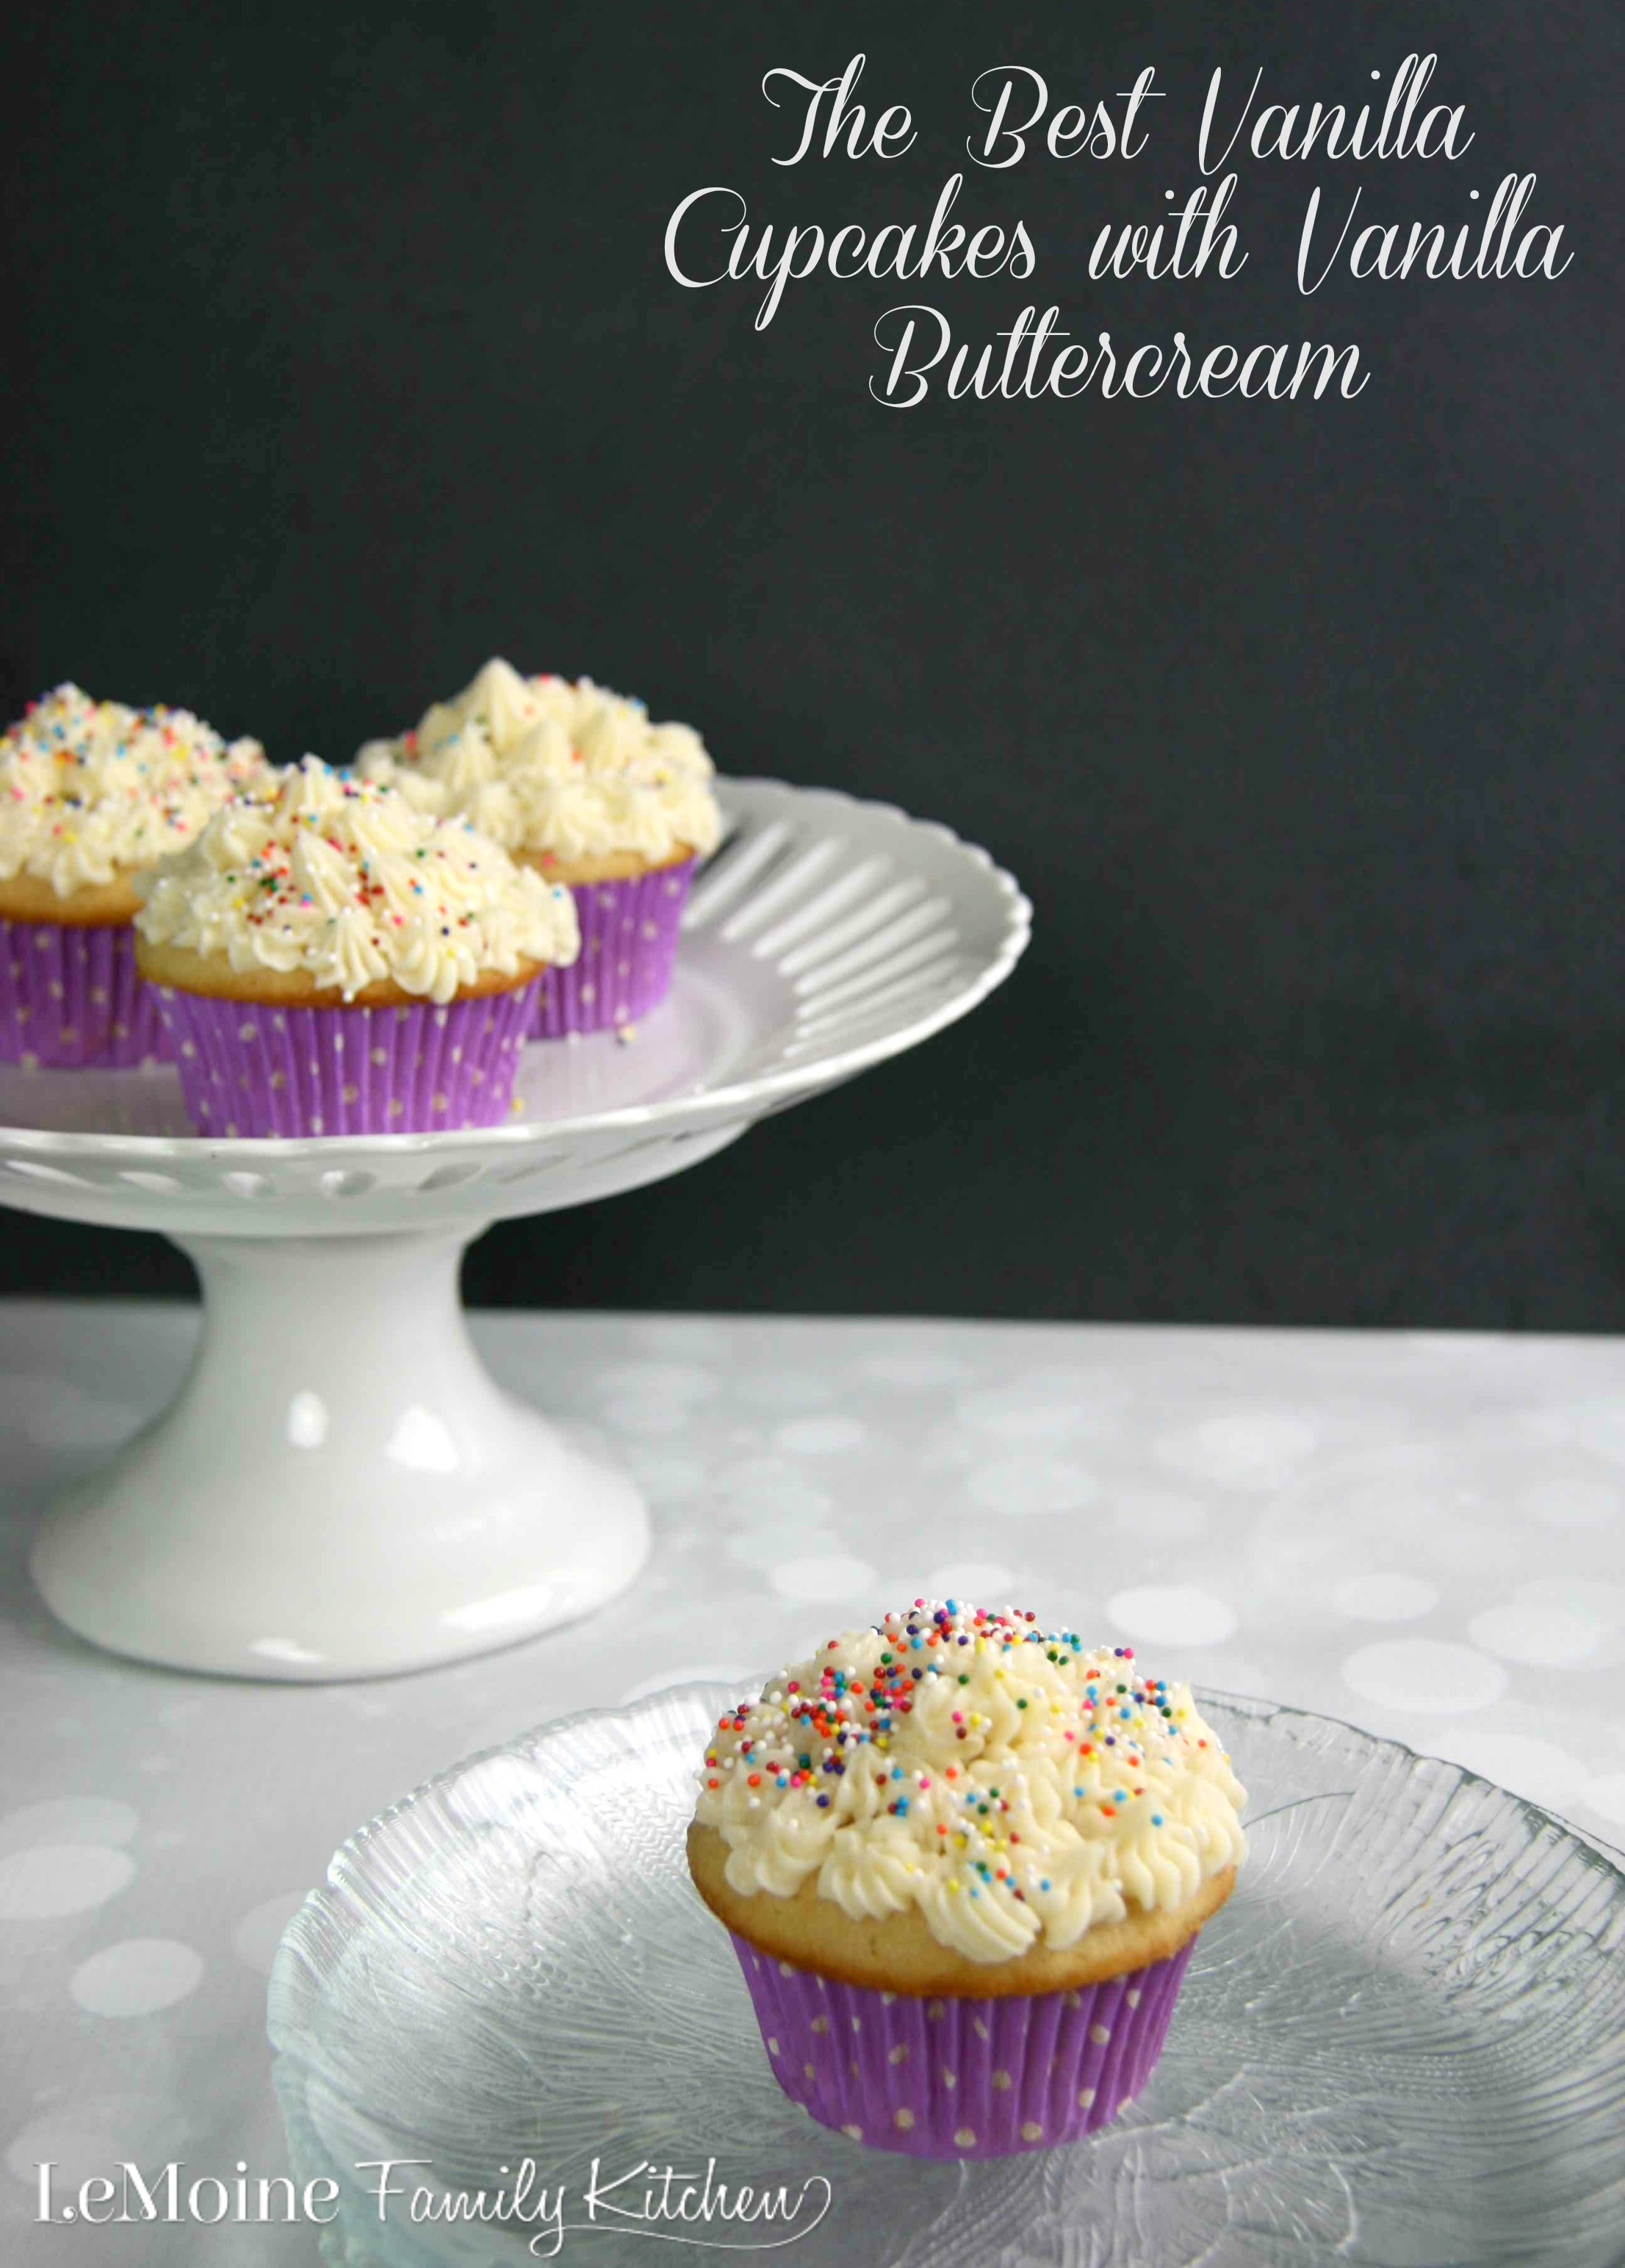 The Best Vanilla Cupcakes with Vanilla Buttercream | LeMoine Family Kitchen . These are the best, moist, light & fluffy vanilla cupcakes. Topped with a simple vanilla buttercream frosting. Dessert perfection.